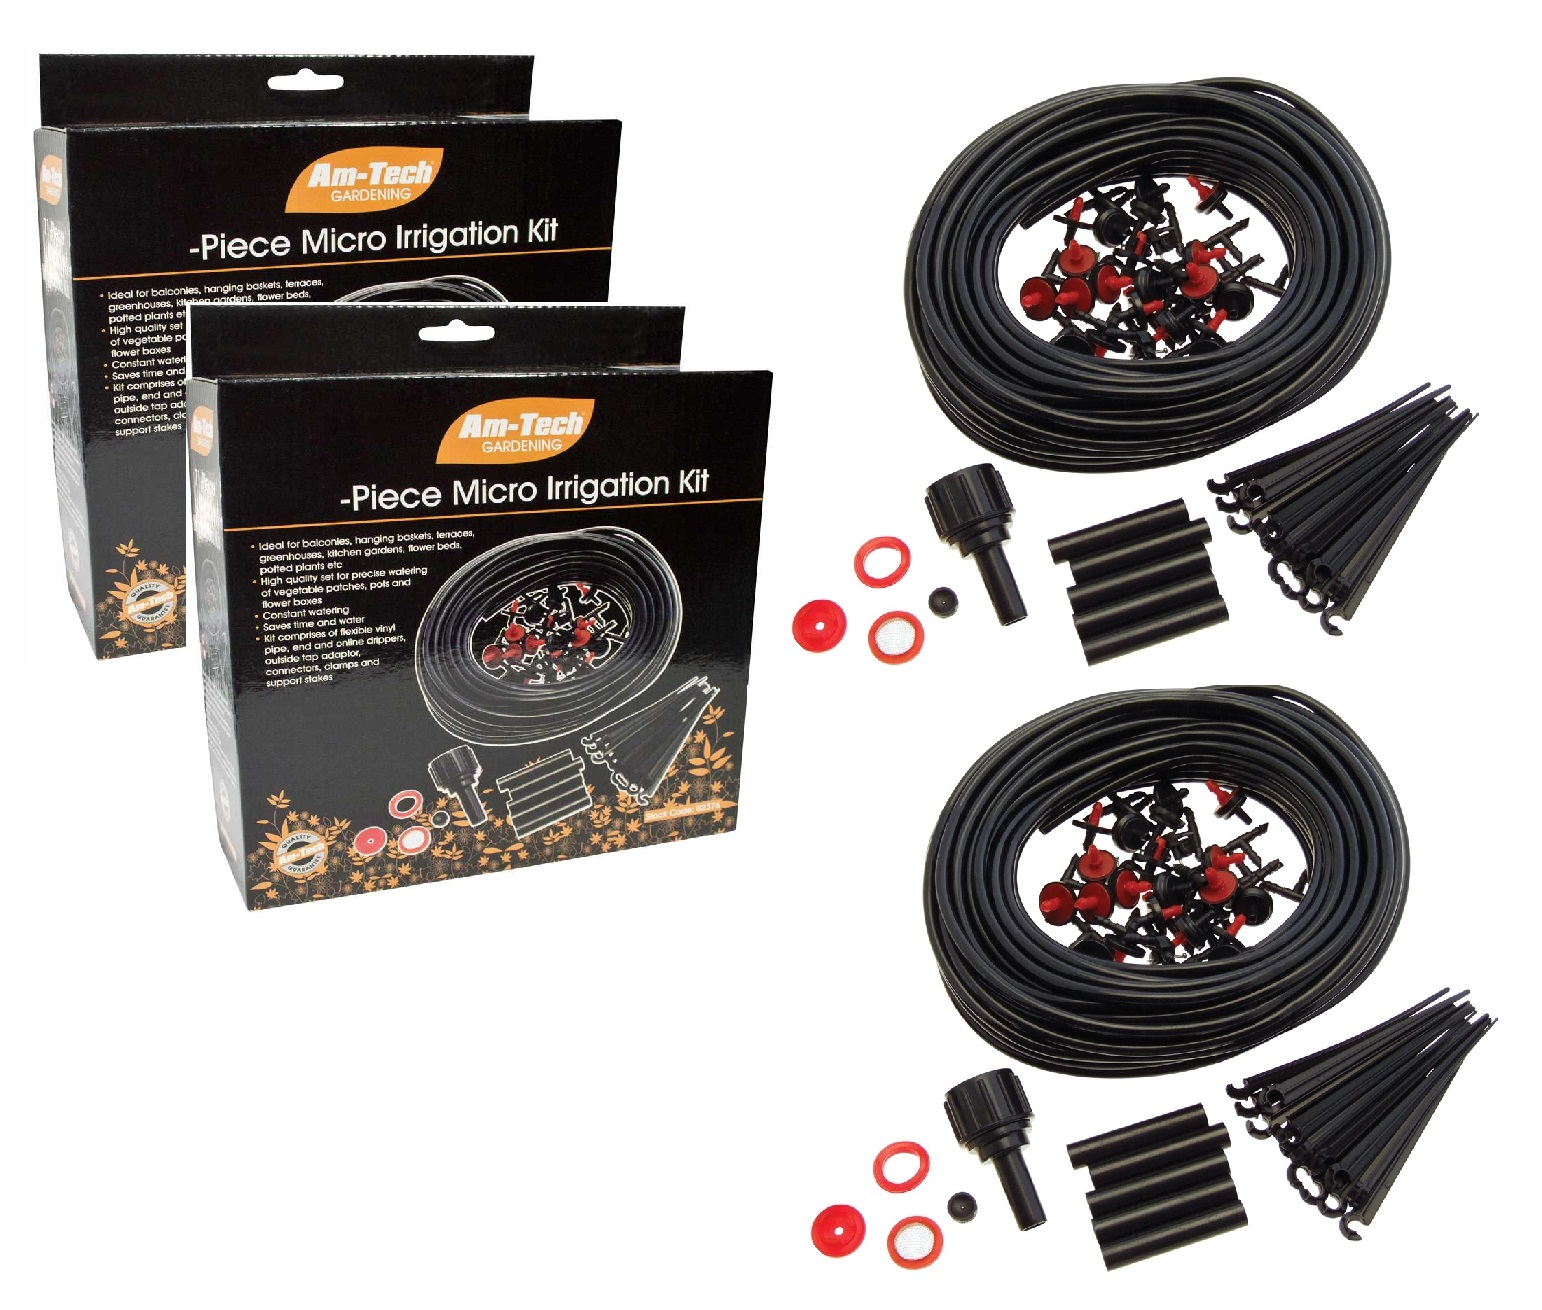 Details about Amtech 46 Metre 142pc Micro Plant Irrigation Kit Drip  Watering Greenhouse System